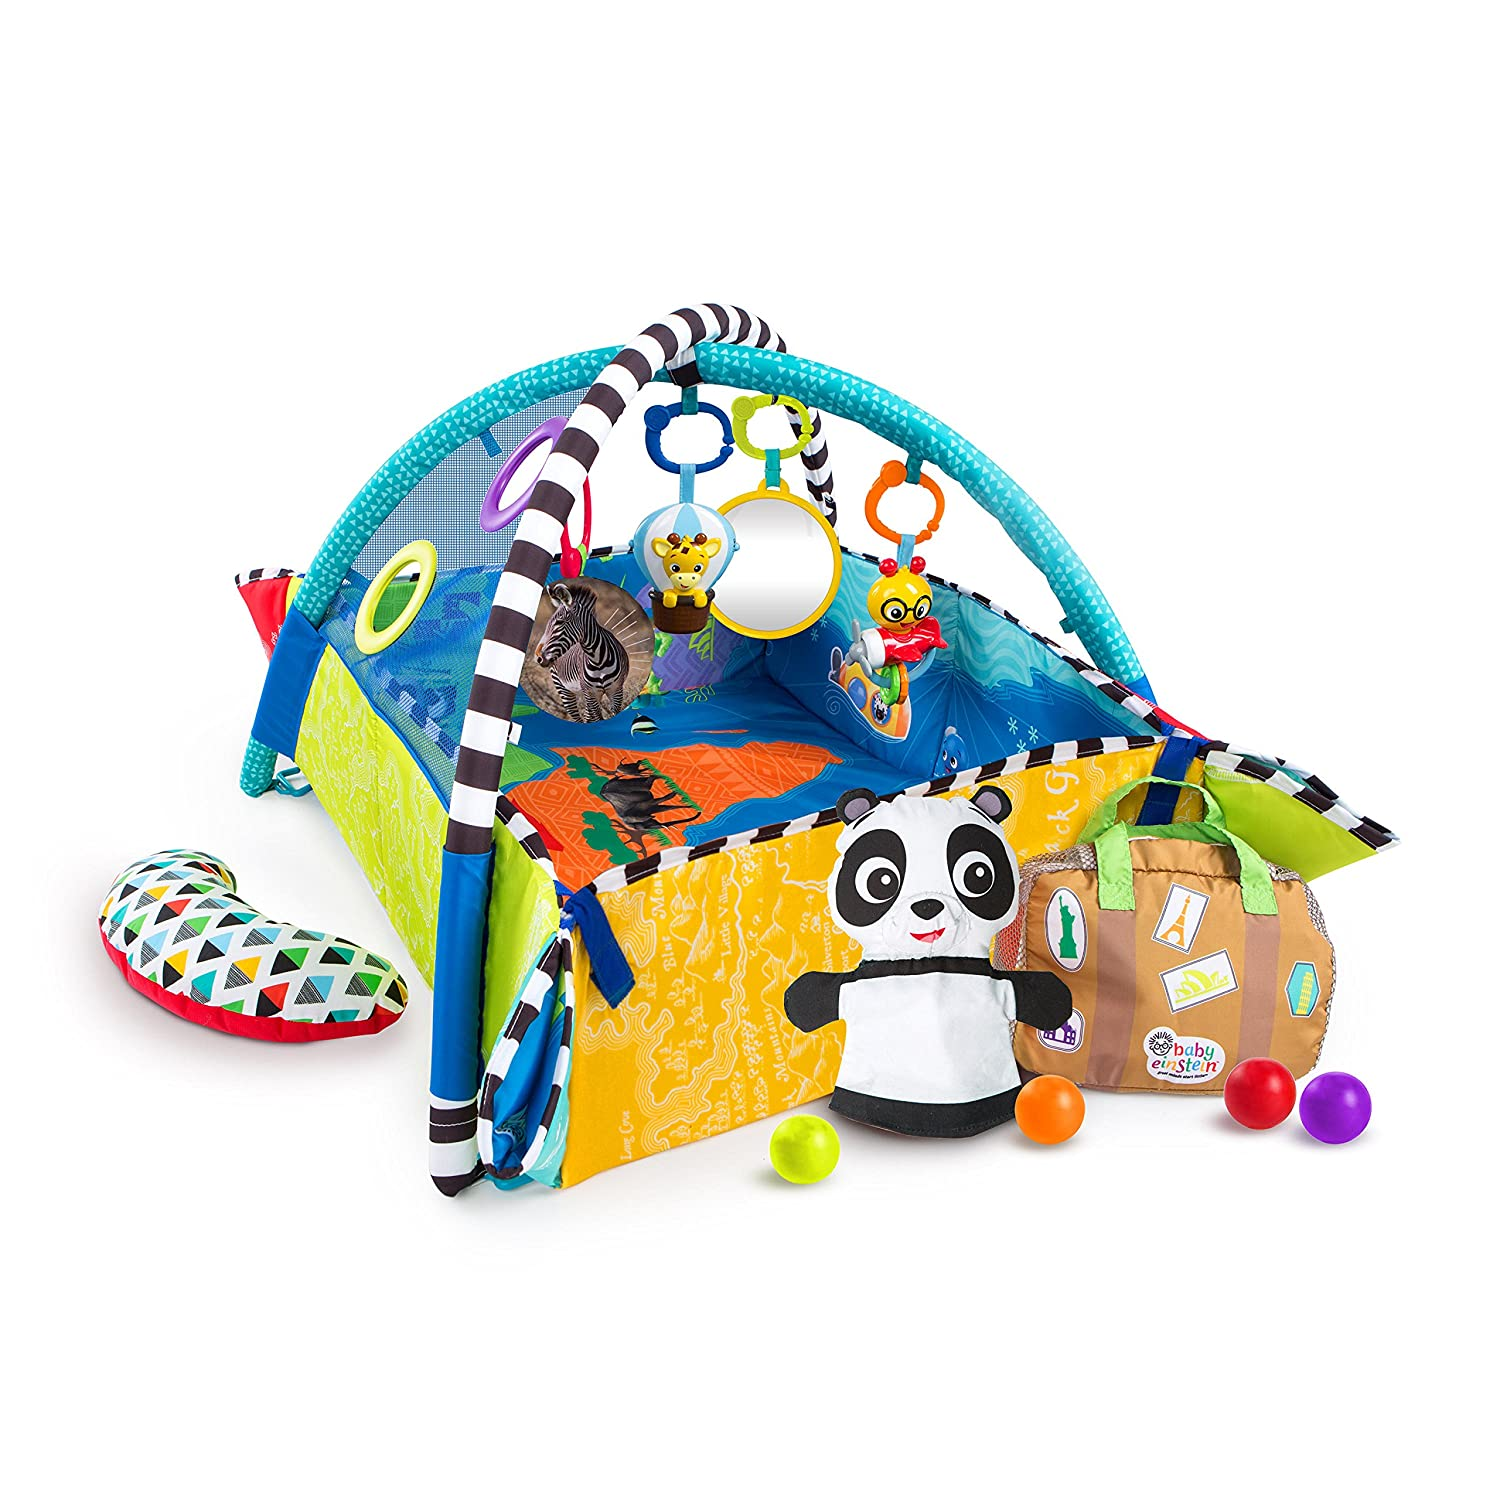 Baby Einstein 5-in-1 Journey of Discovery Activity Gym Kids II - (Carson CA) 11287-2-W11